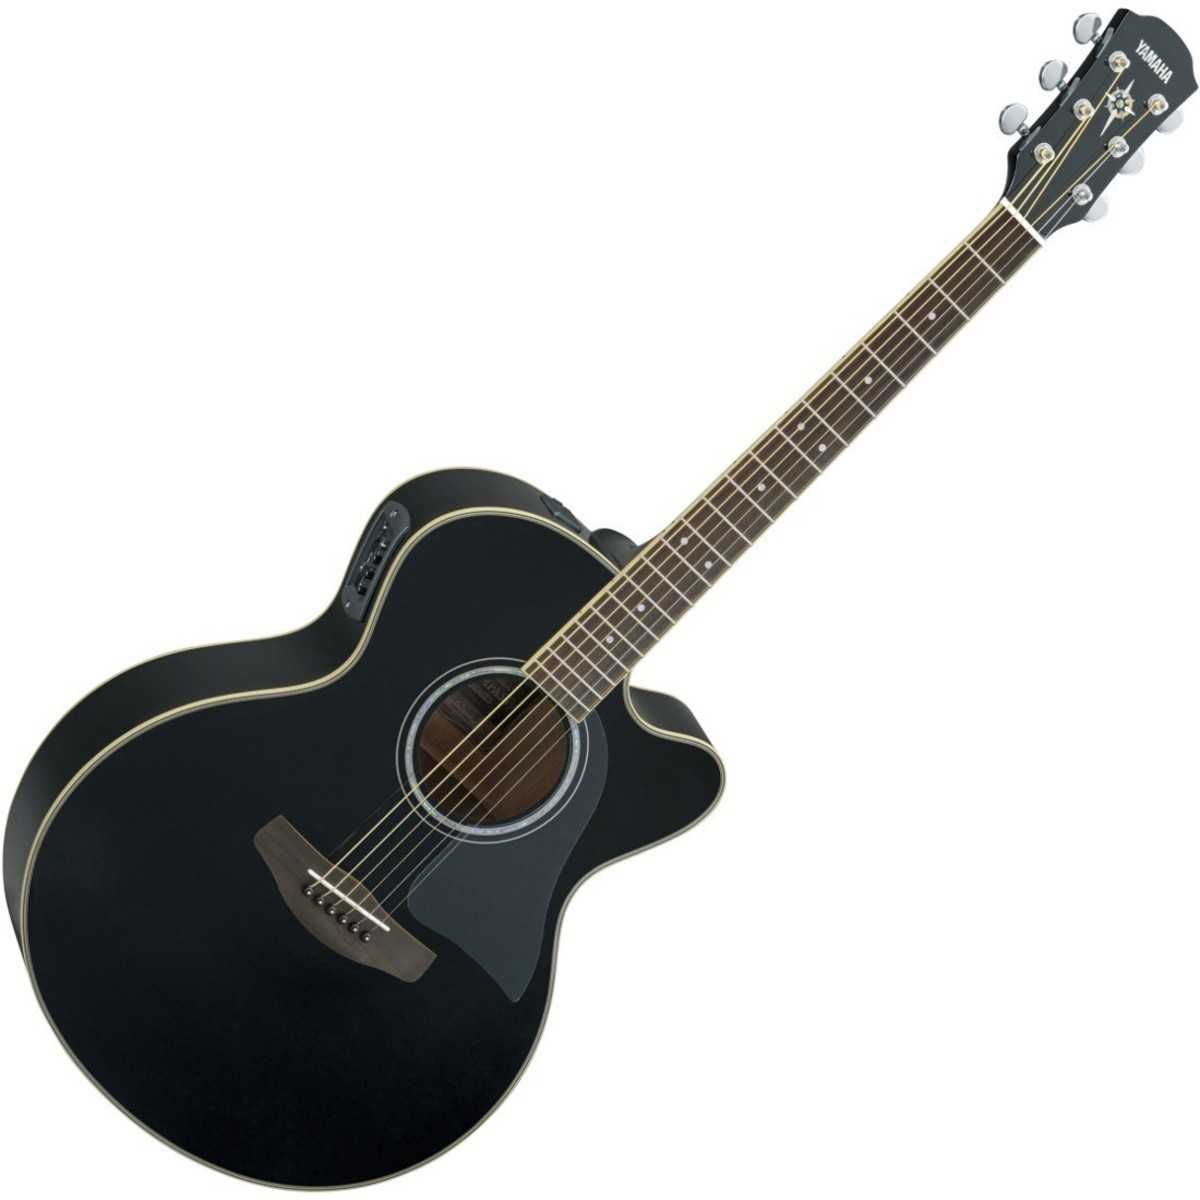 yamaha cpx500 iii electro acoustic guitar black at gear4music. Black Bedroom Furniture Sets. Home Design Ideas